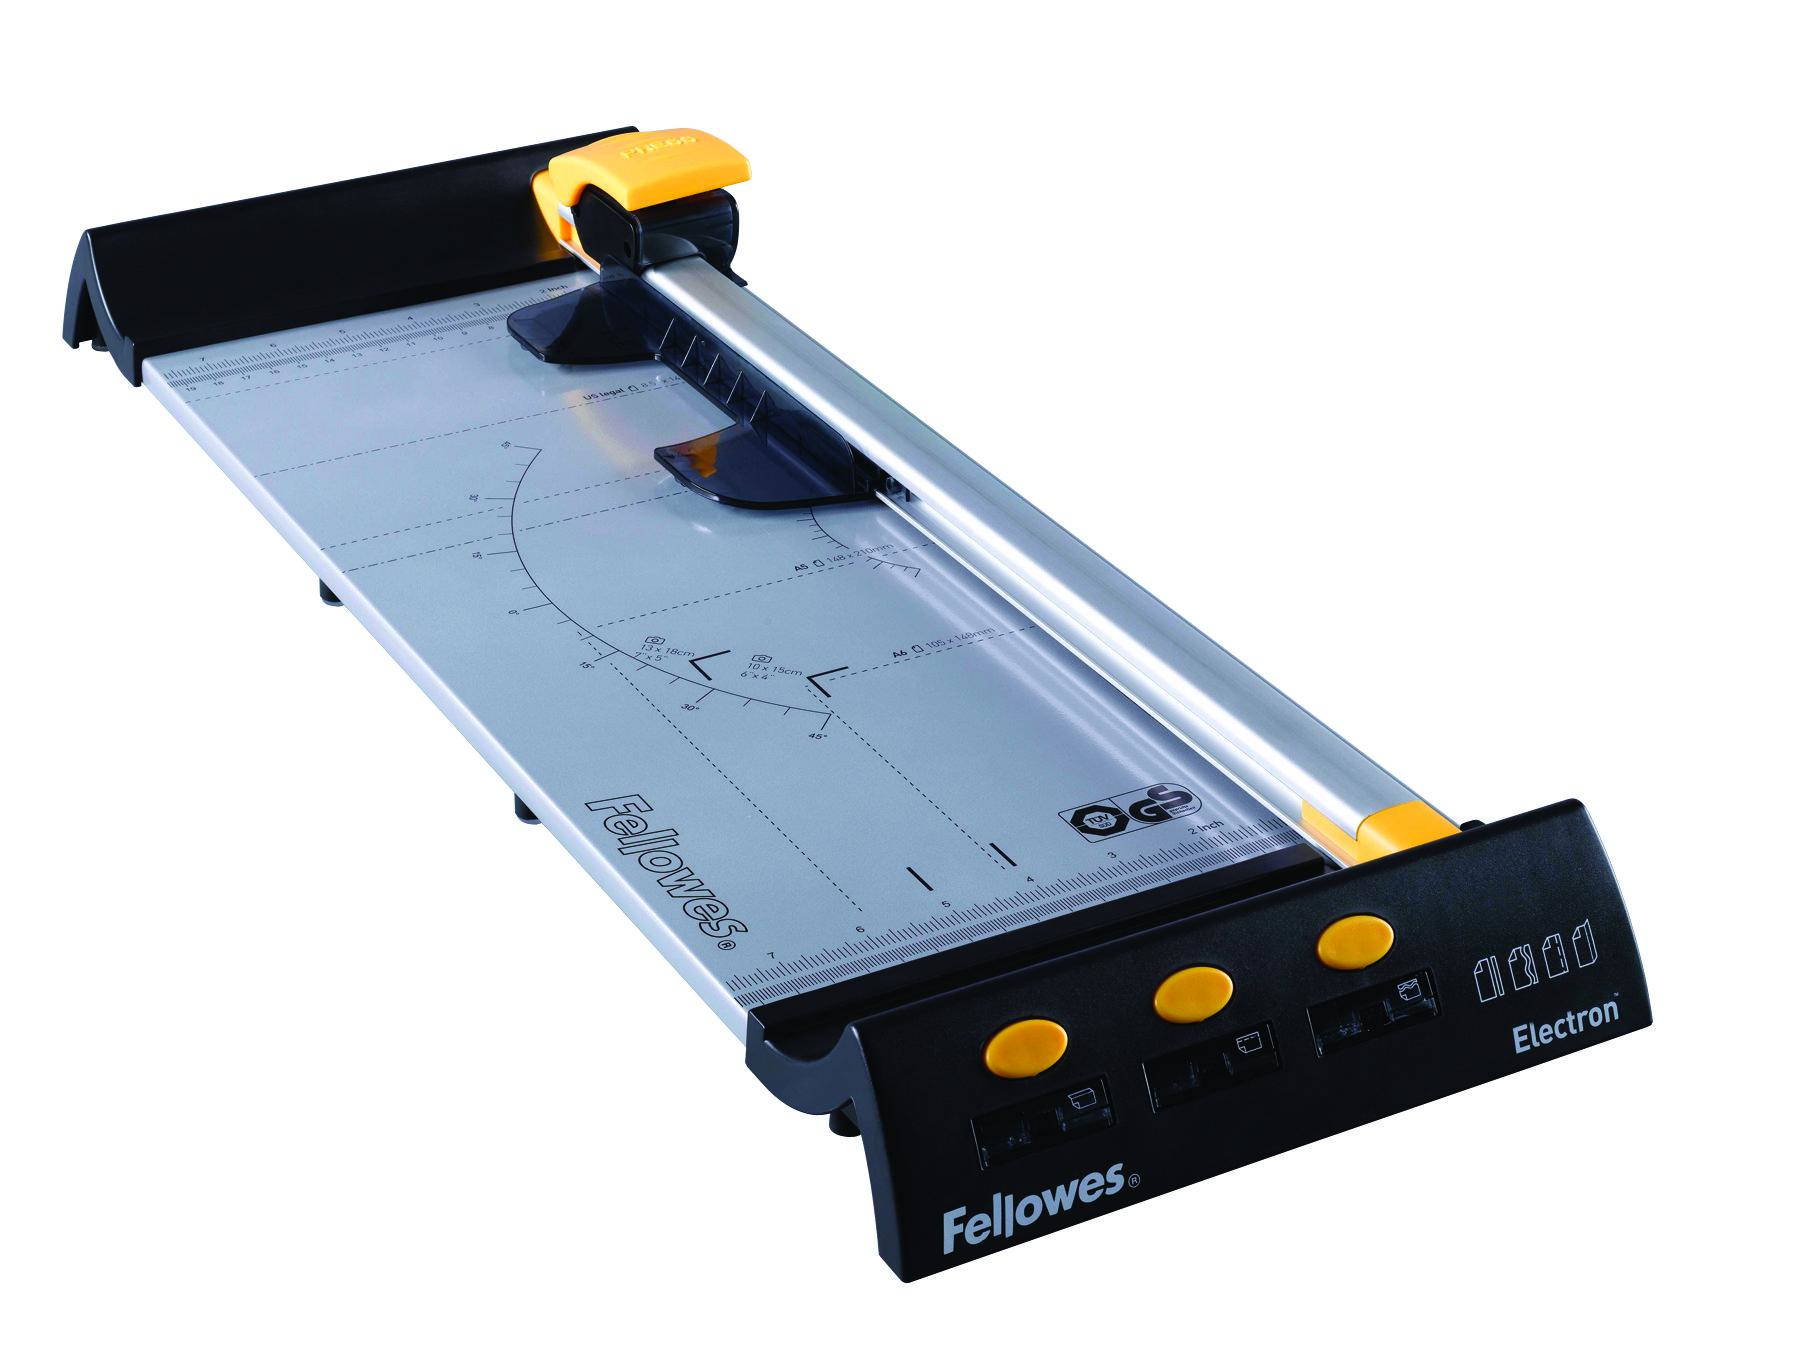 Fellowes Electron A3/180 paper cutter 10 sheets